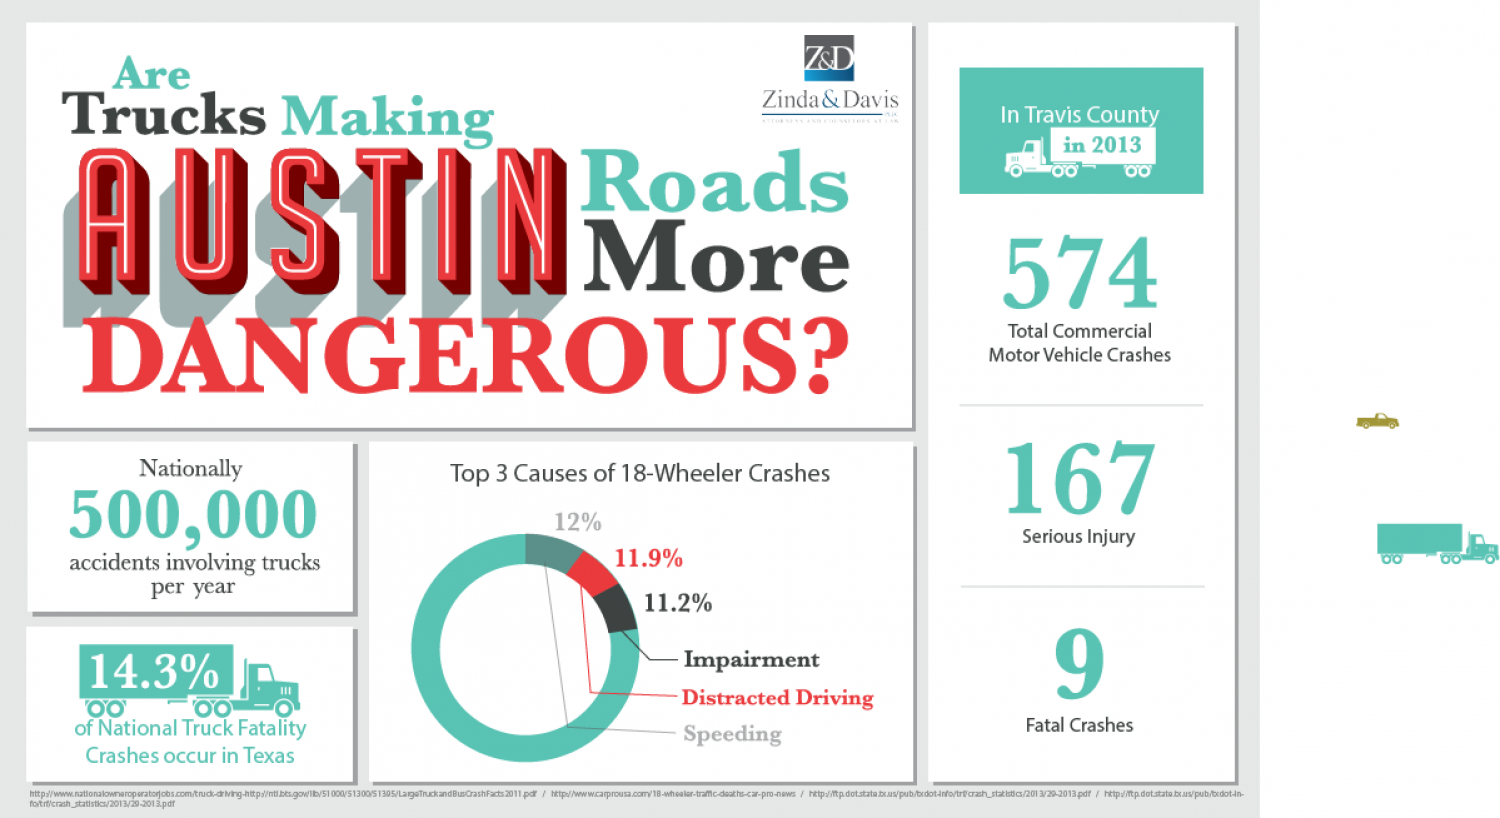 Are Trucks Making Austin Roads More Dangerous Infographic